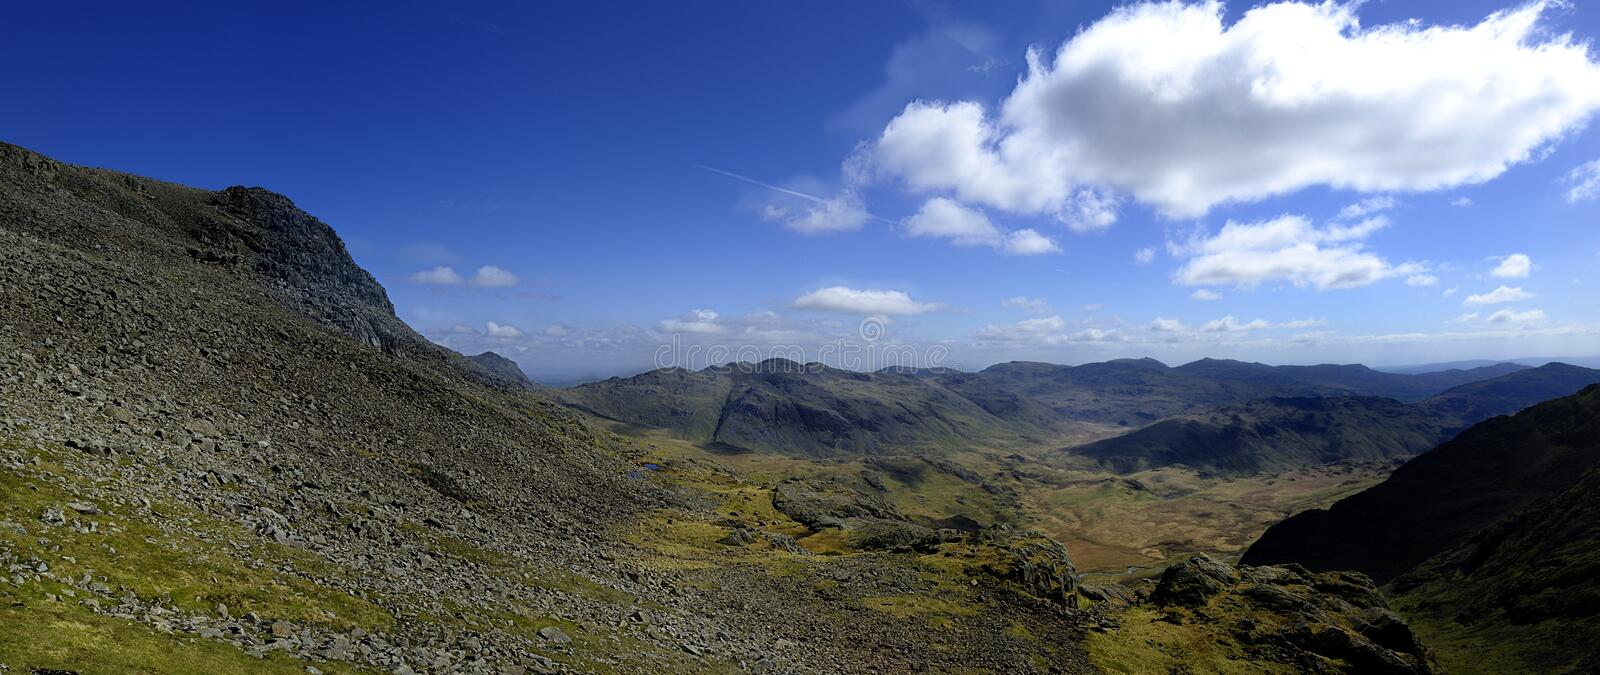 Eskdale Valley. Bowfell, The Crinkles and Coniston Fells from Mickledore Ridge stock images